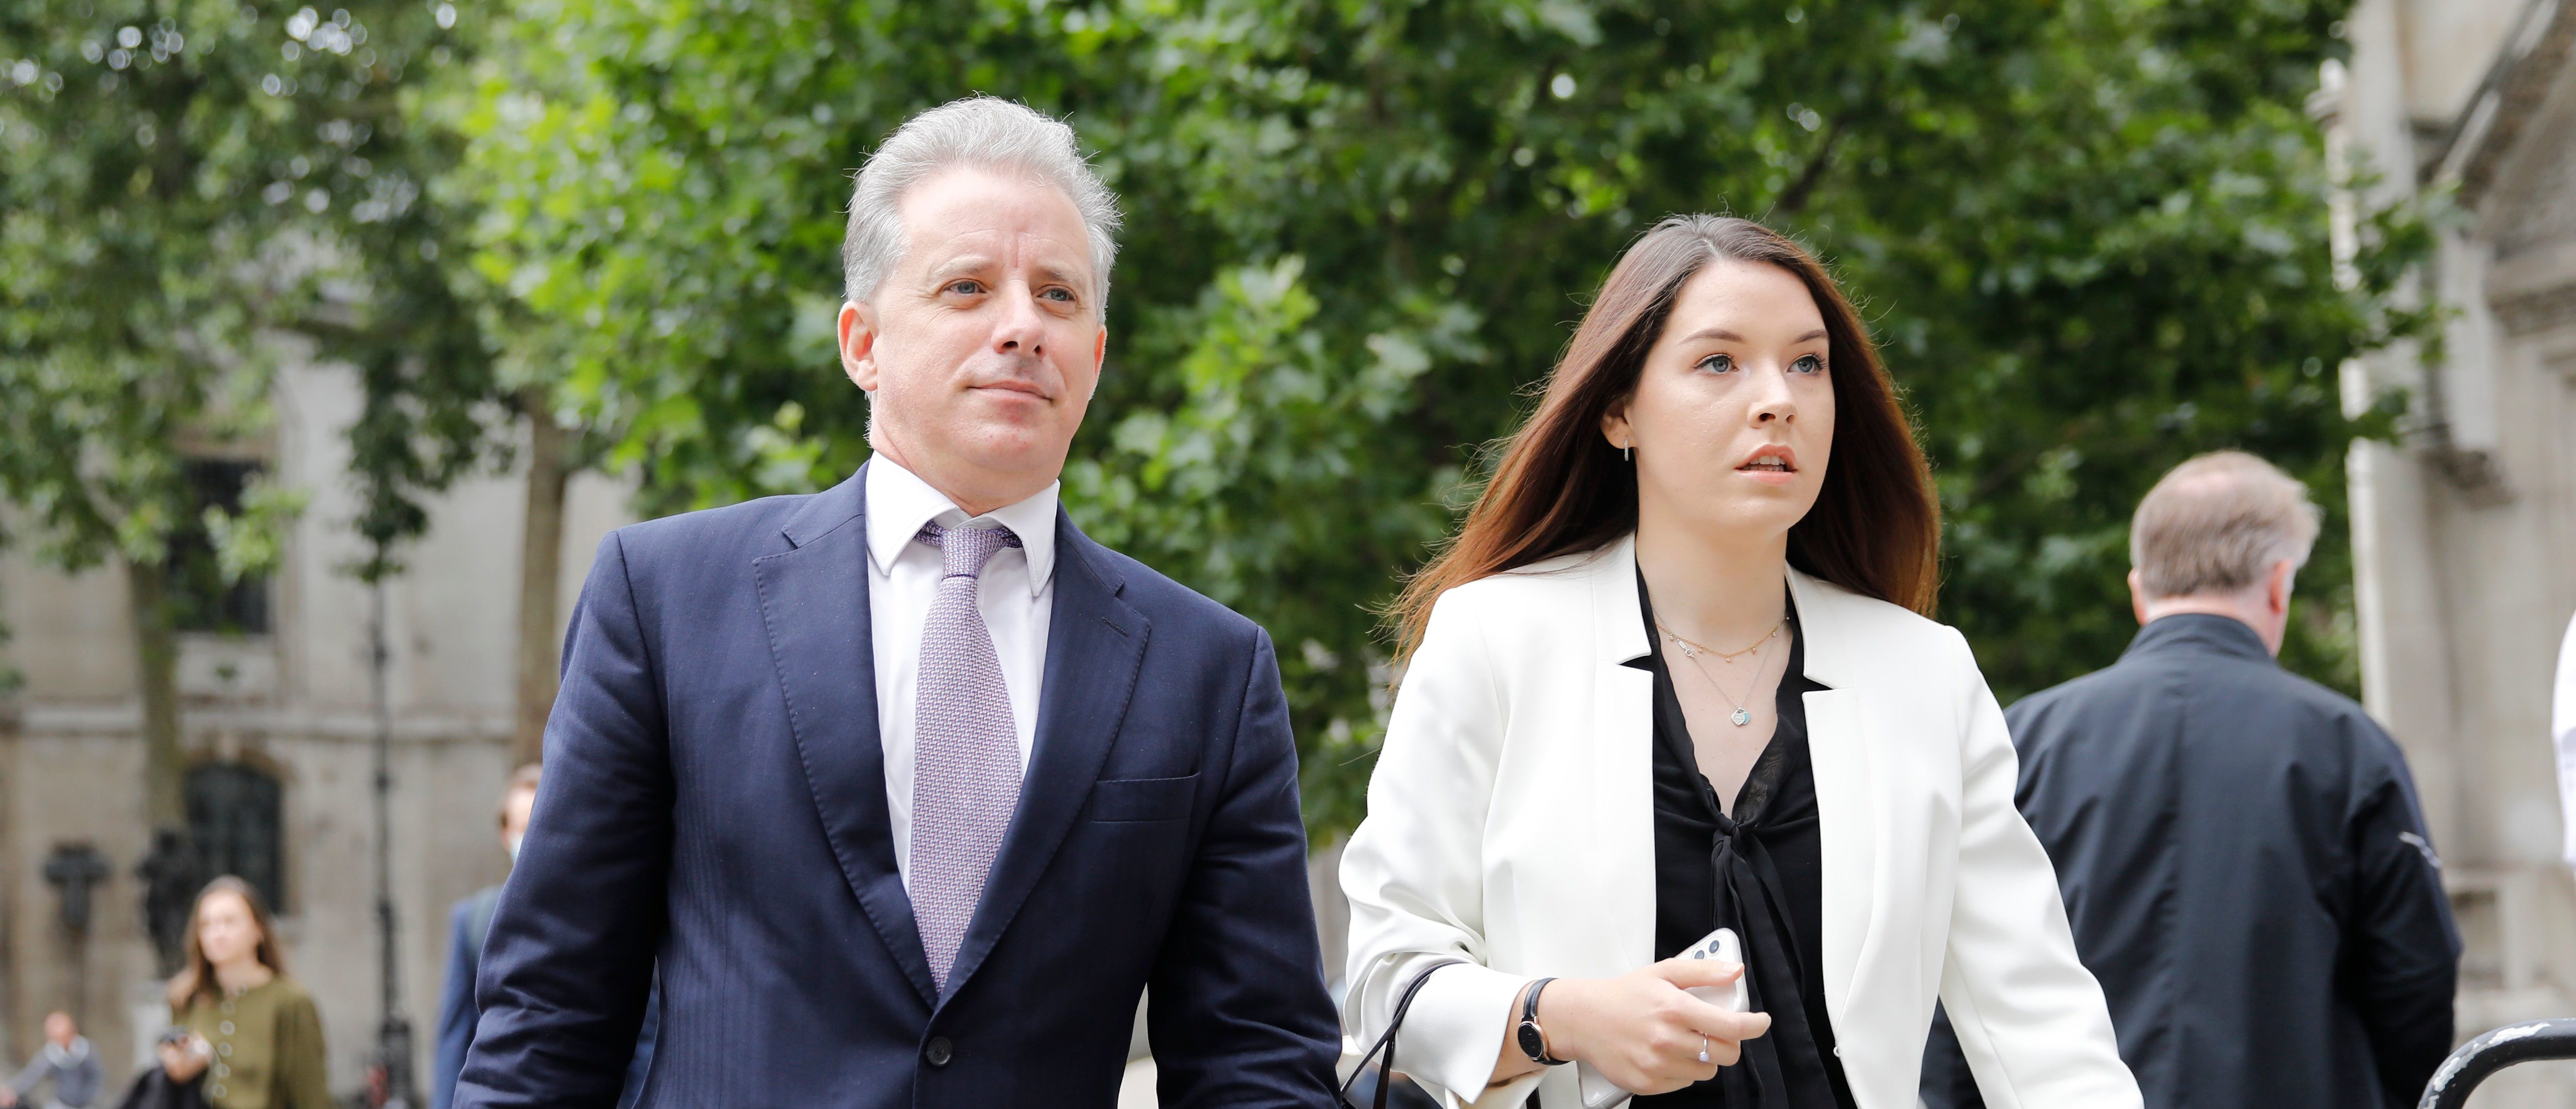 Steele Source Had Meeting In Russia At Crucial Point In Dossier Saga